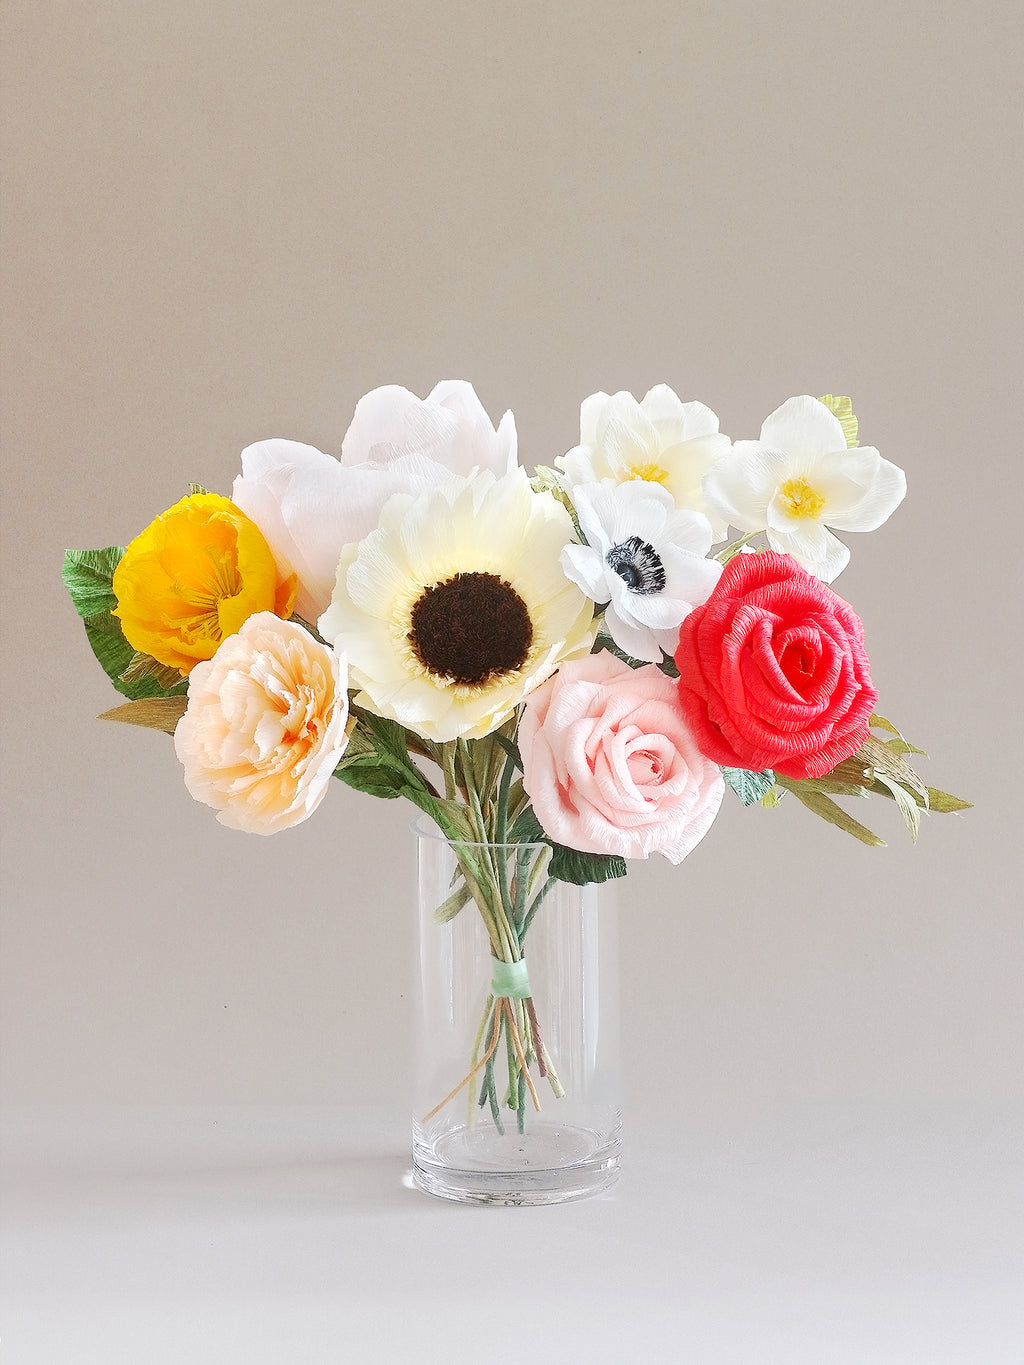 _<h1>When a Mimosa Won't Cut It</h1><p>Peach centered peony, assorted hues of roses, a pale yellow sunflower, a pop of peach carnation and orange poppy finished with assorted greenery.</p>